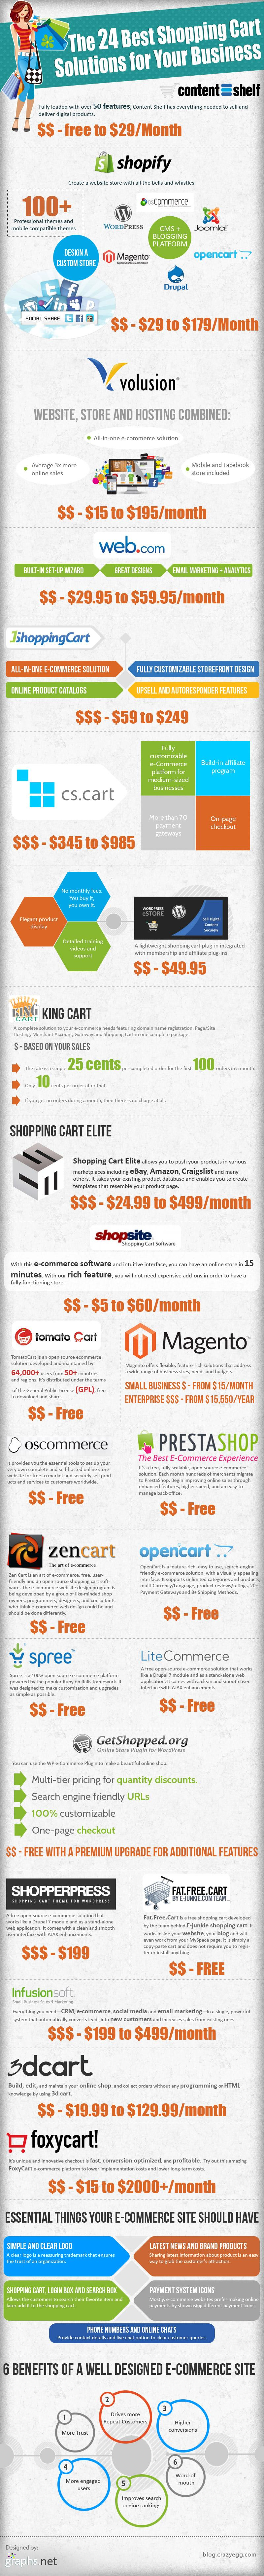 The-24-Best-Shopping-Cart-Solutions-for-Your-Business-2